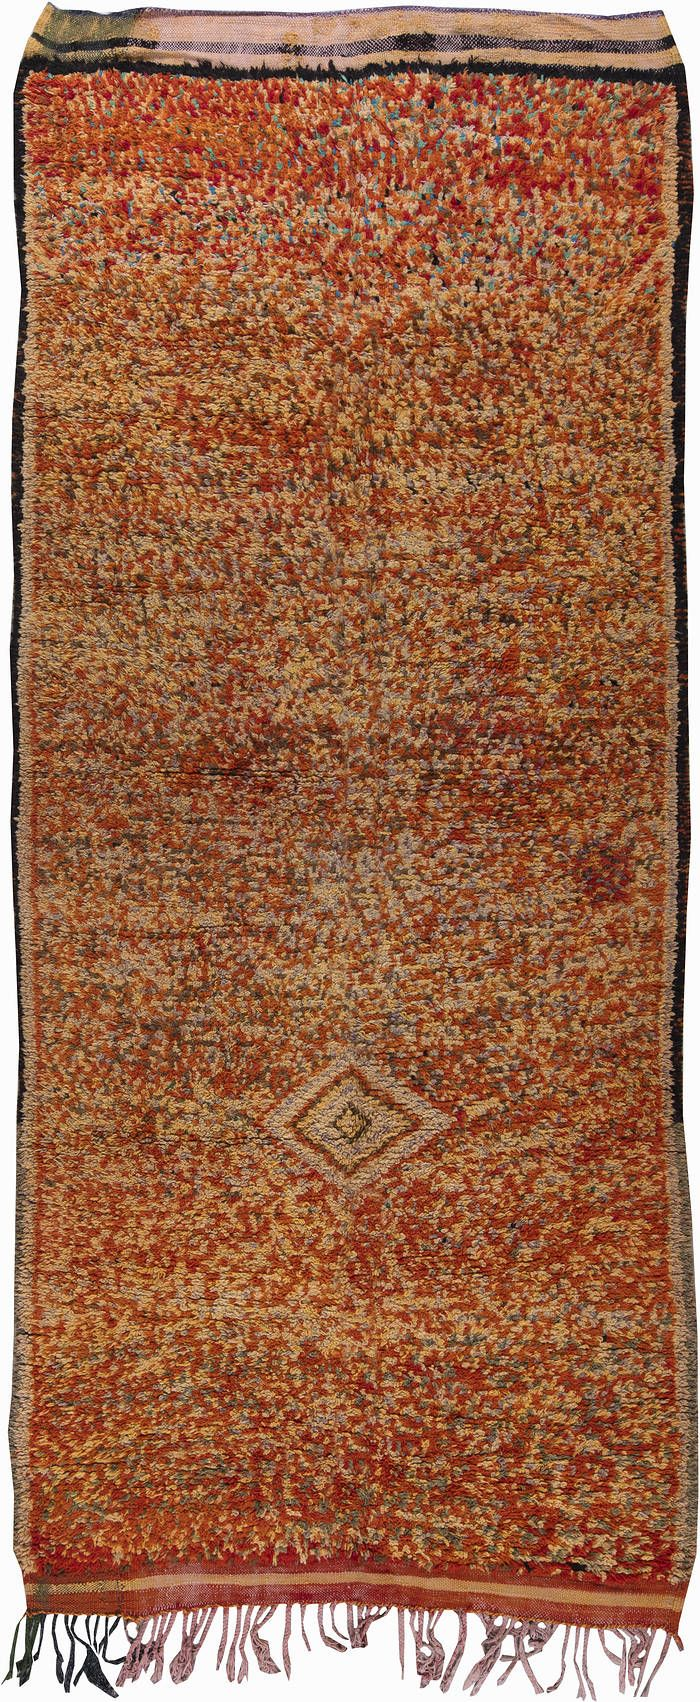 Find This Pin And More On Vintage Rugs NYC.